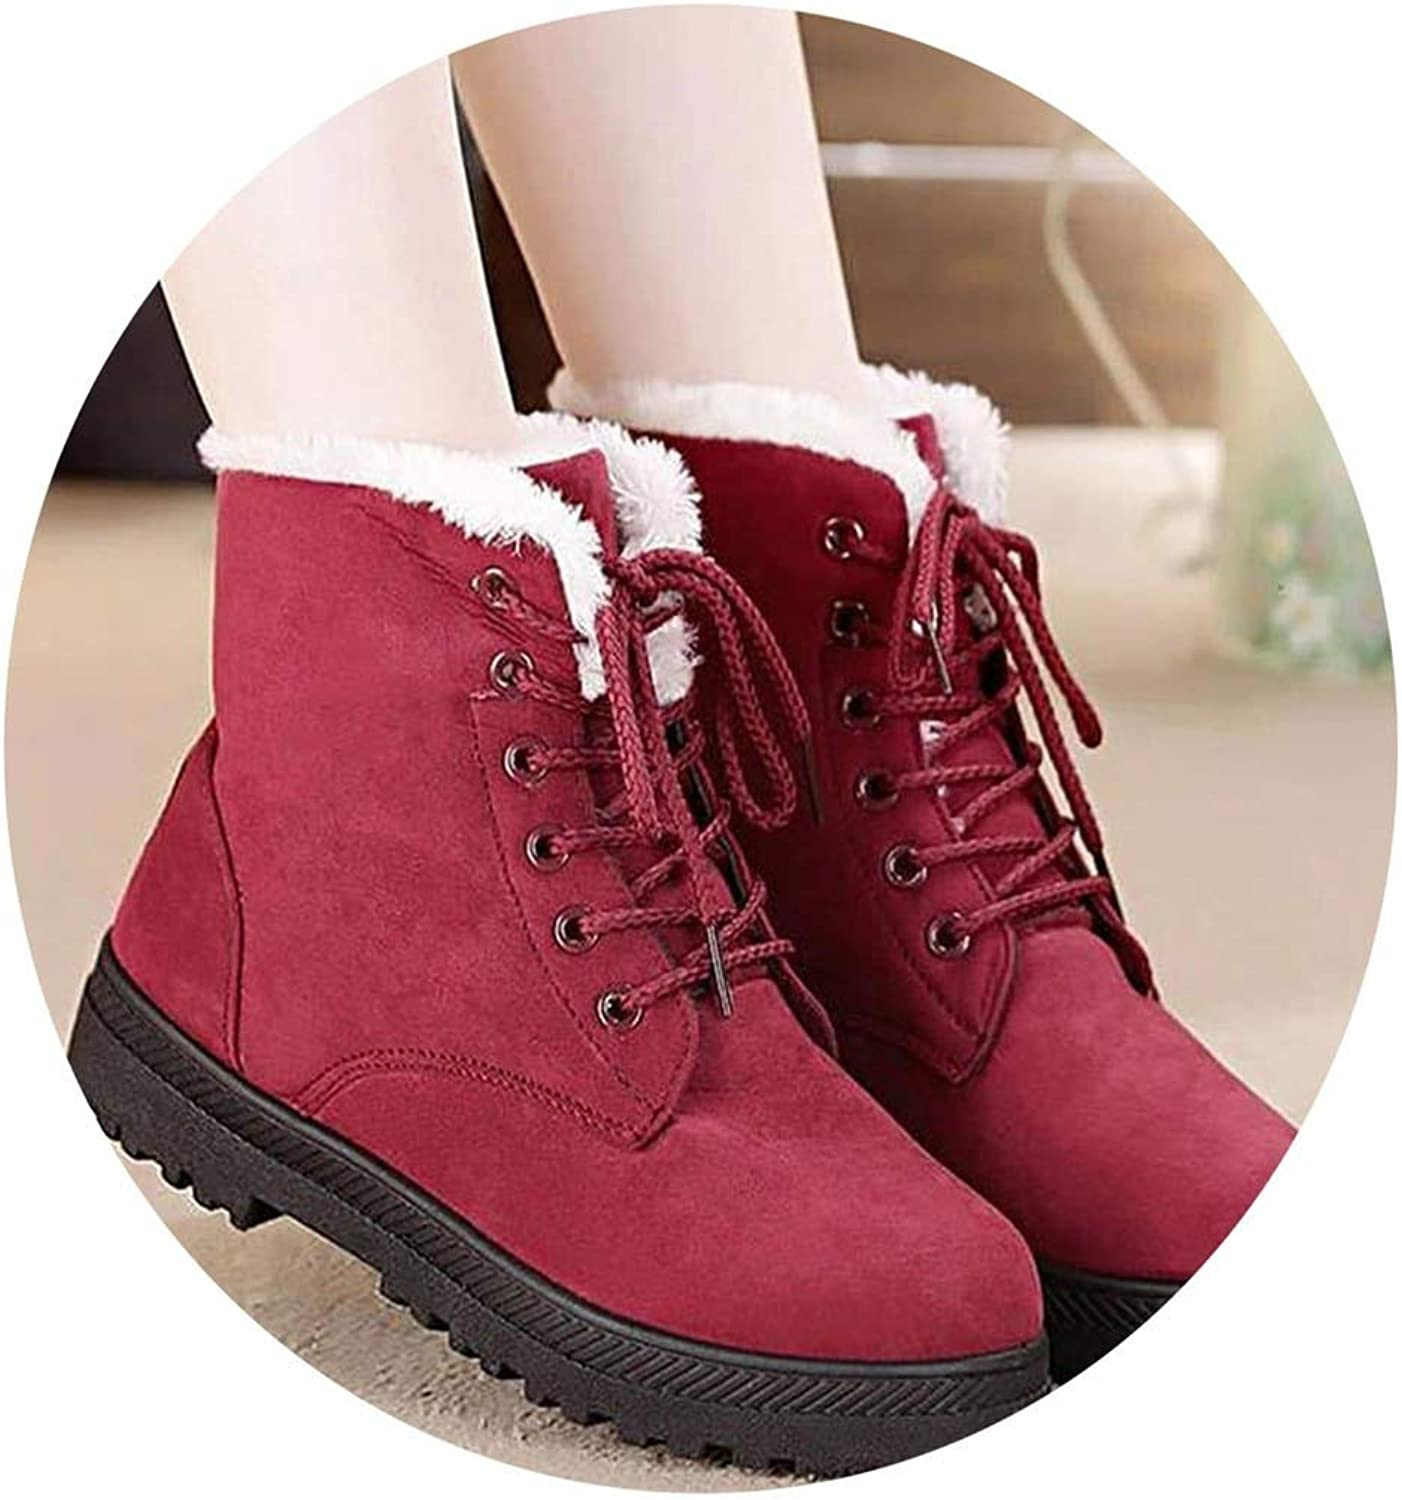 WBeauty Winter Boots Warm Fur Plush Insole Ankle Boots Women shoes hot lace-up shoes Woman